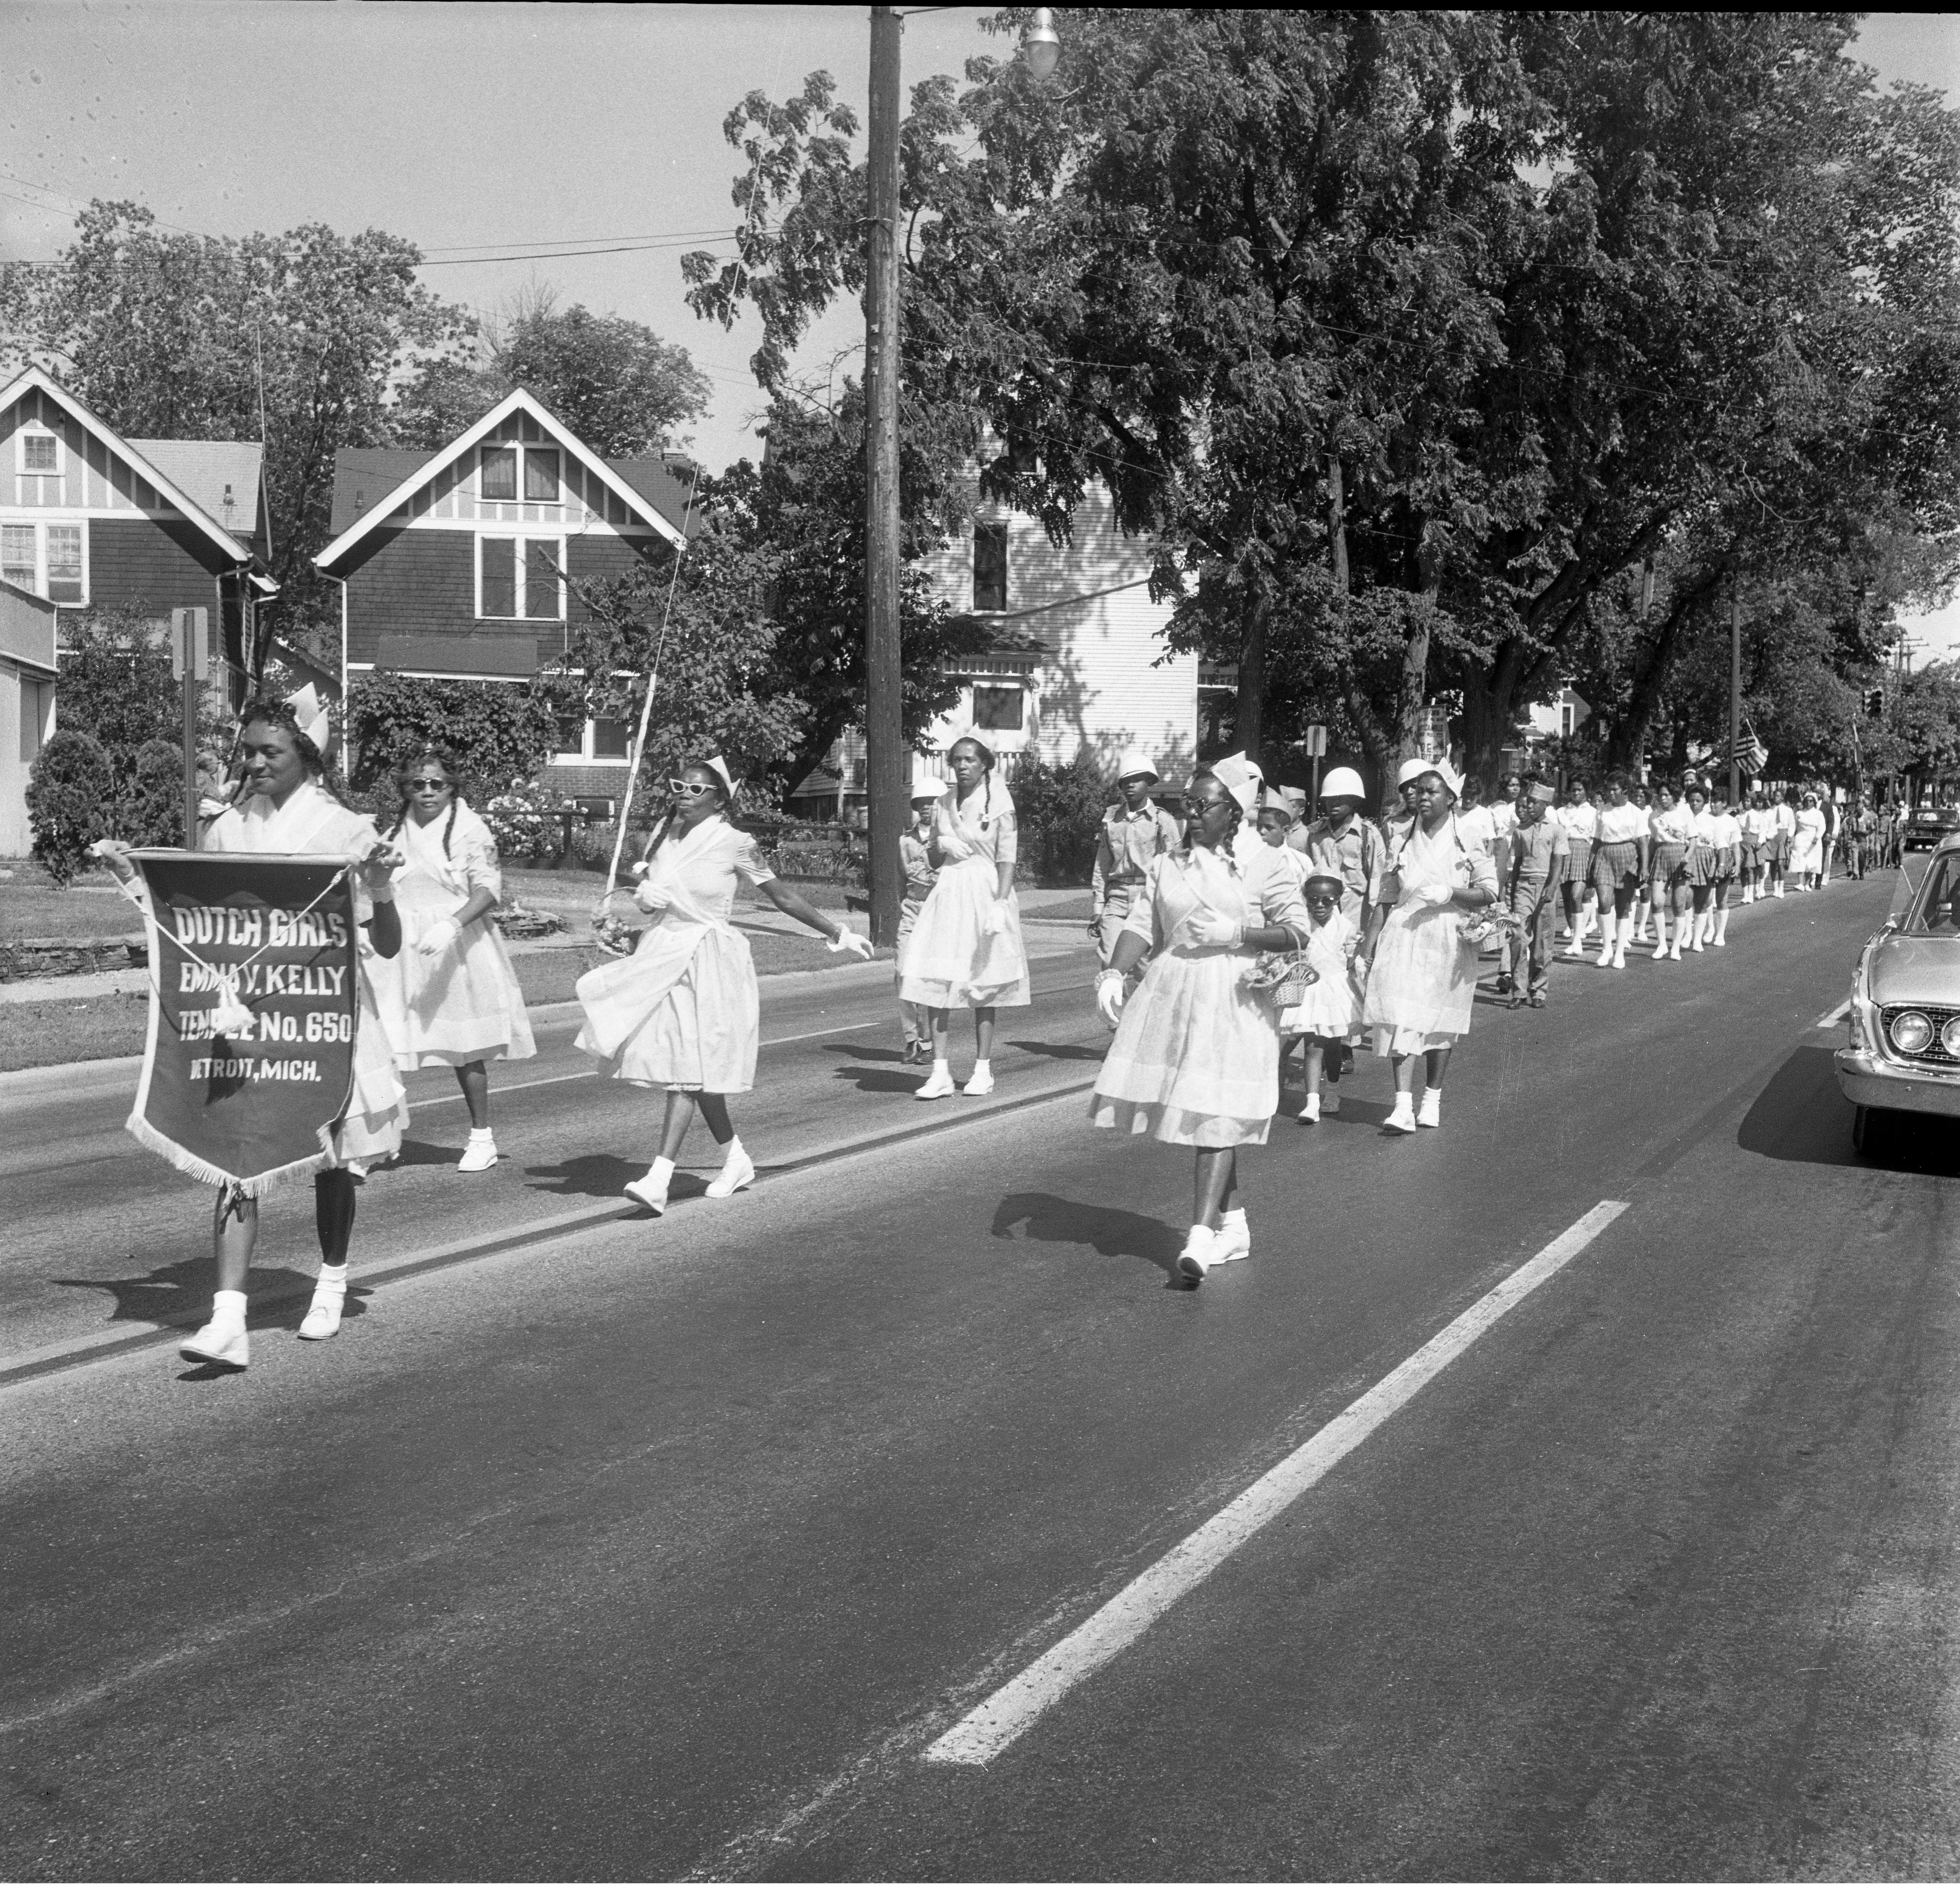 Dutch Girls, Emma V. Kelly, Temple No. 650 Marching In The 26th Annual Elks Convention Parade, June 25, 1962 image